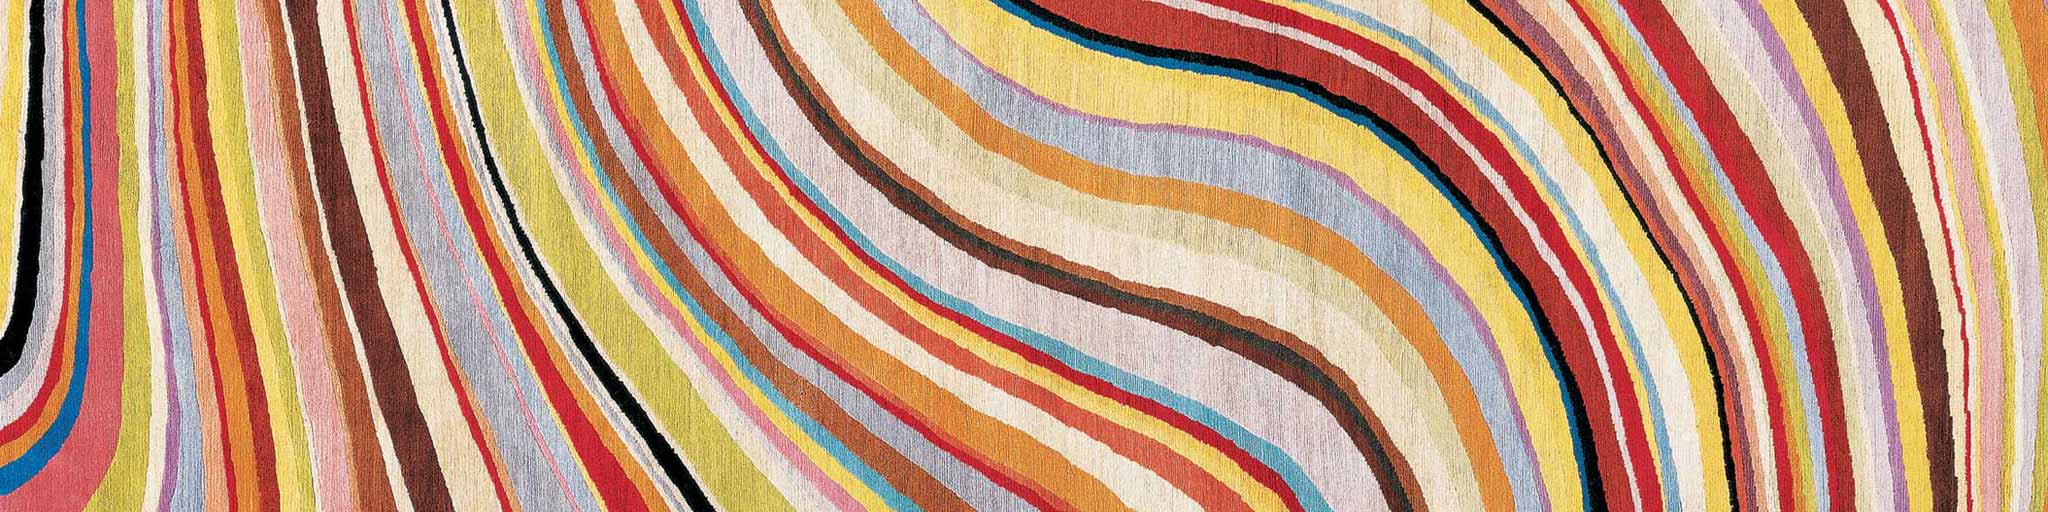 I Want A Knock Off Paul Smith Rug